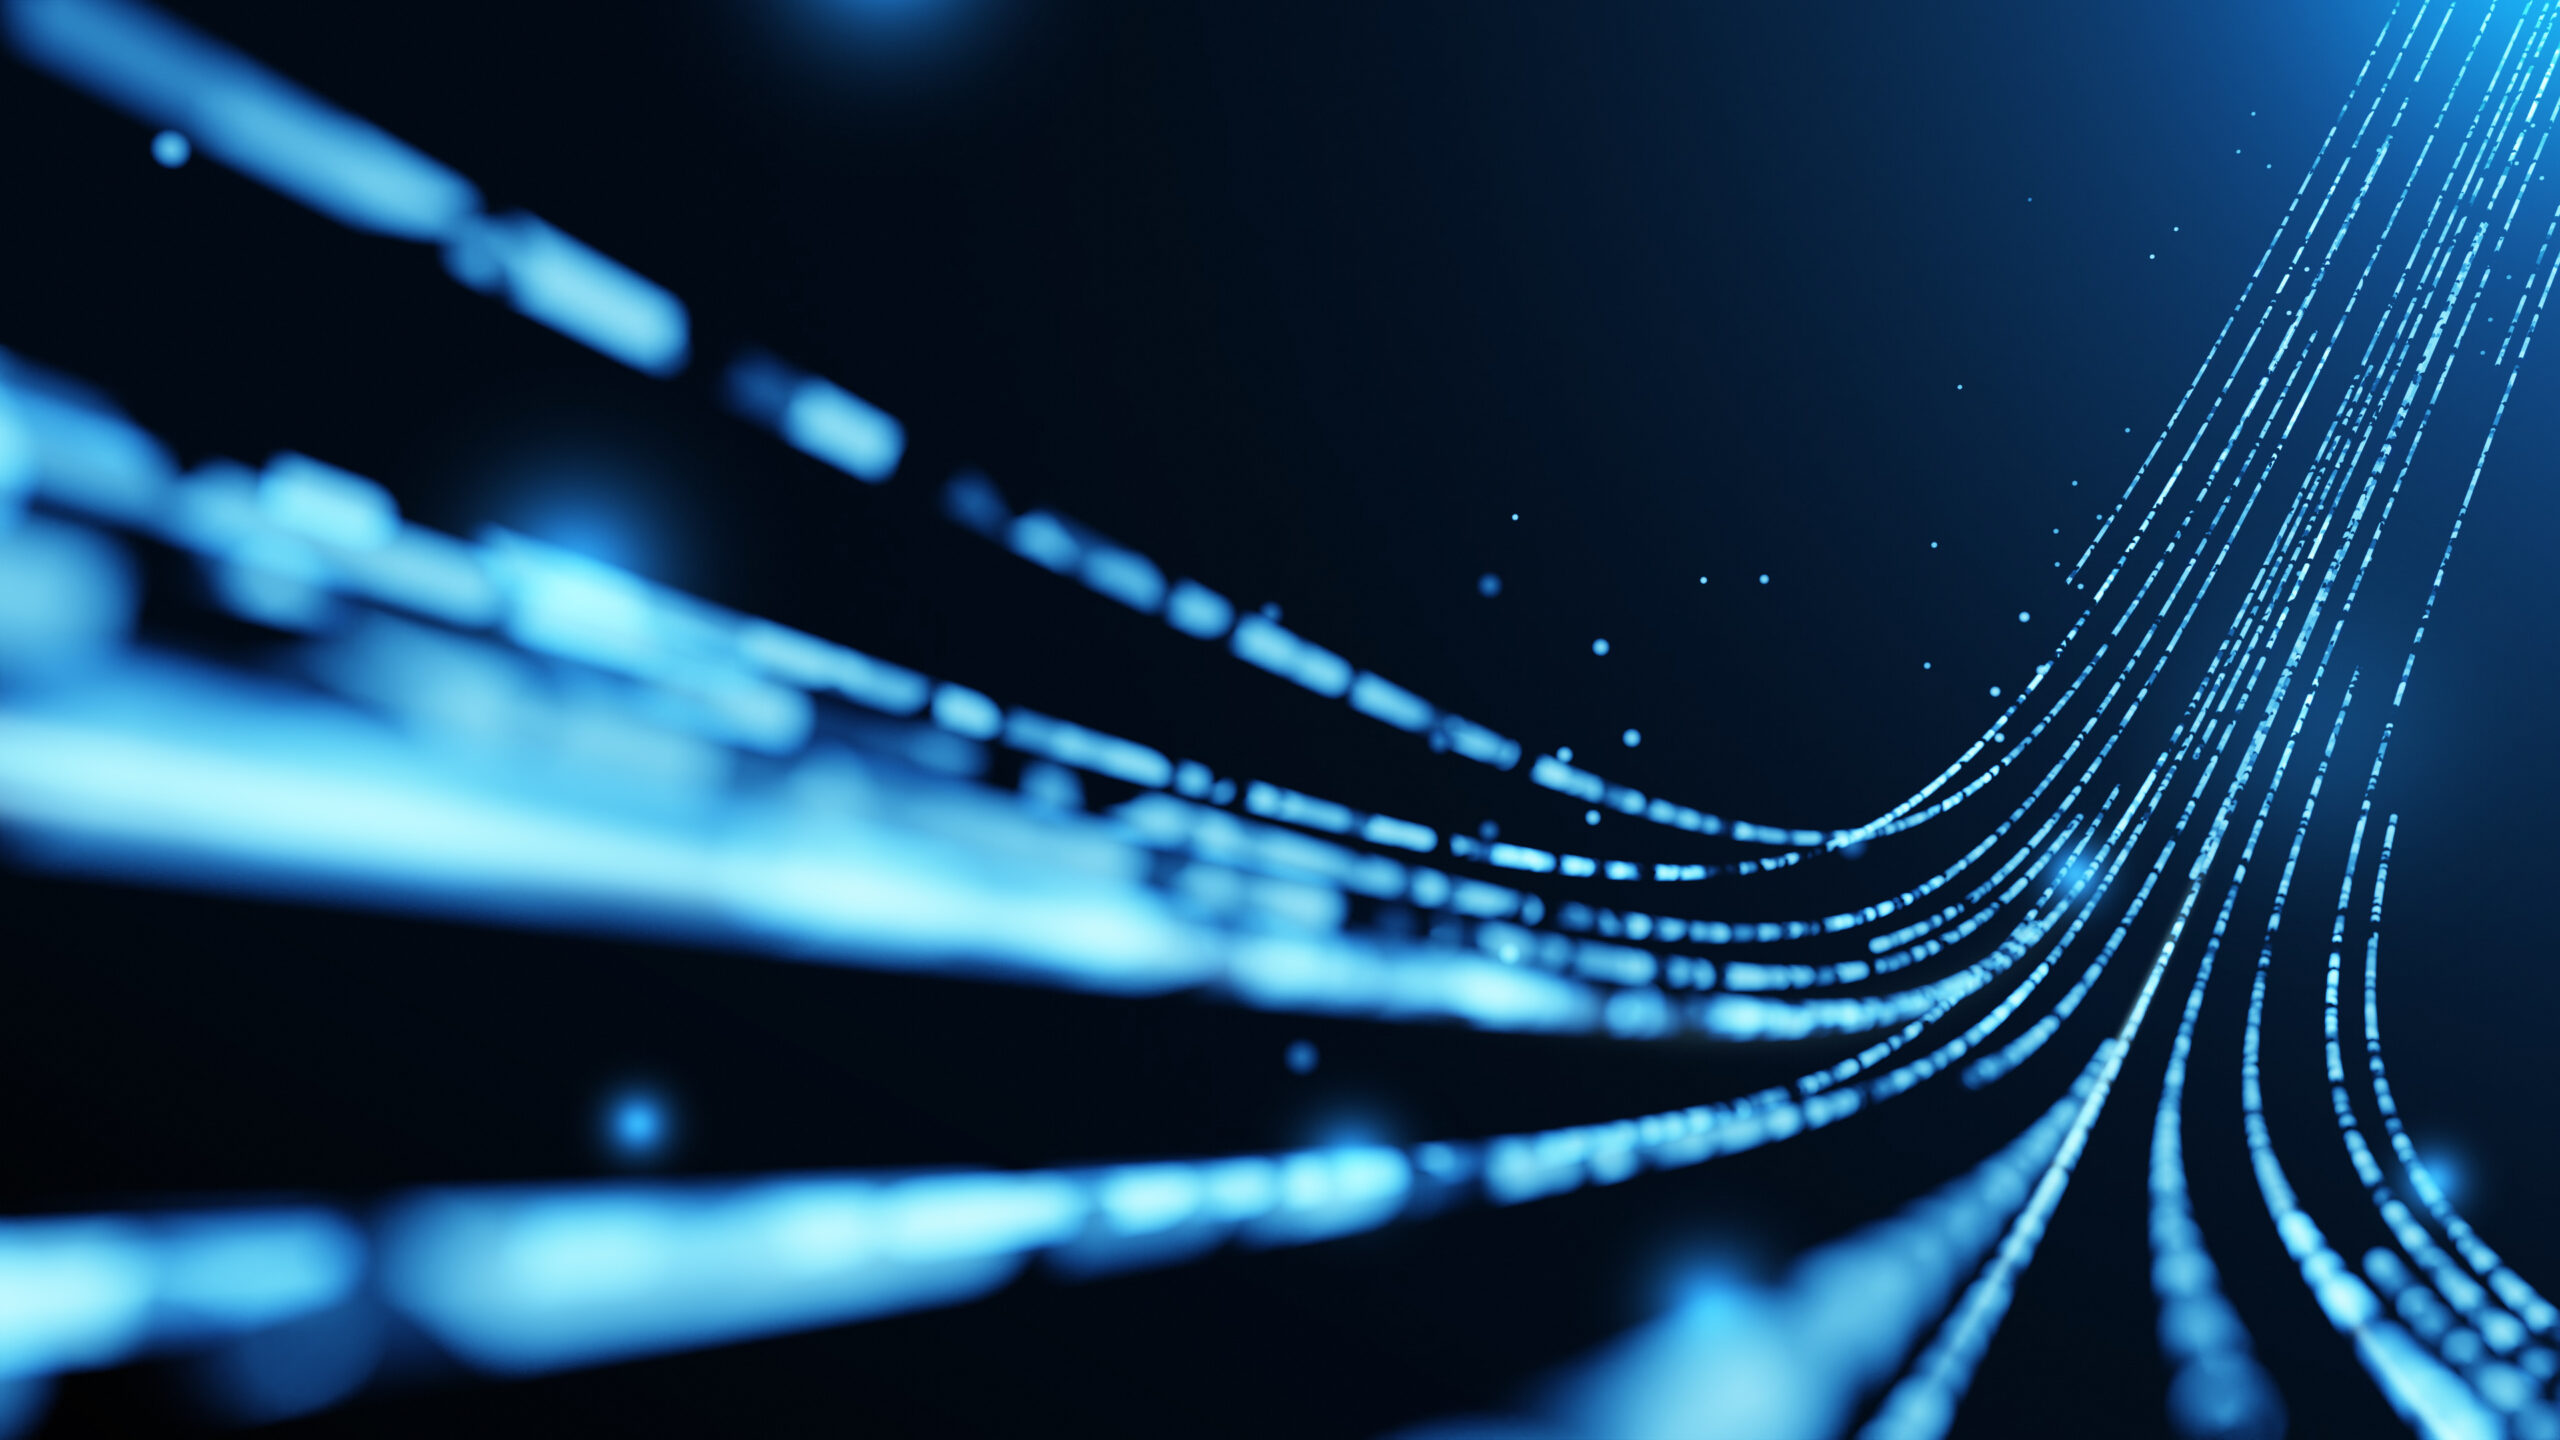 Virtual data transfer in network and internet, 3D rendering in technology and futuristic concept.